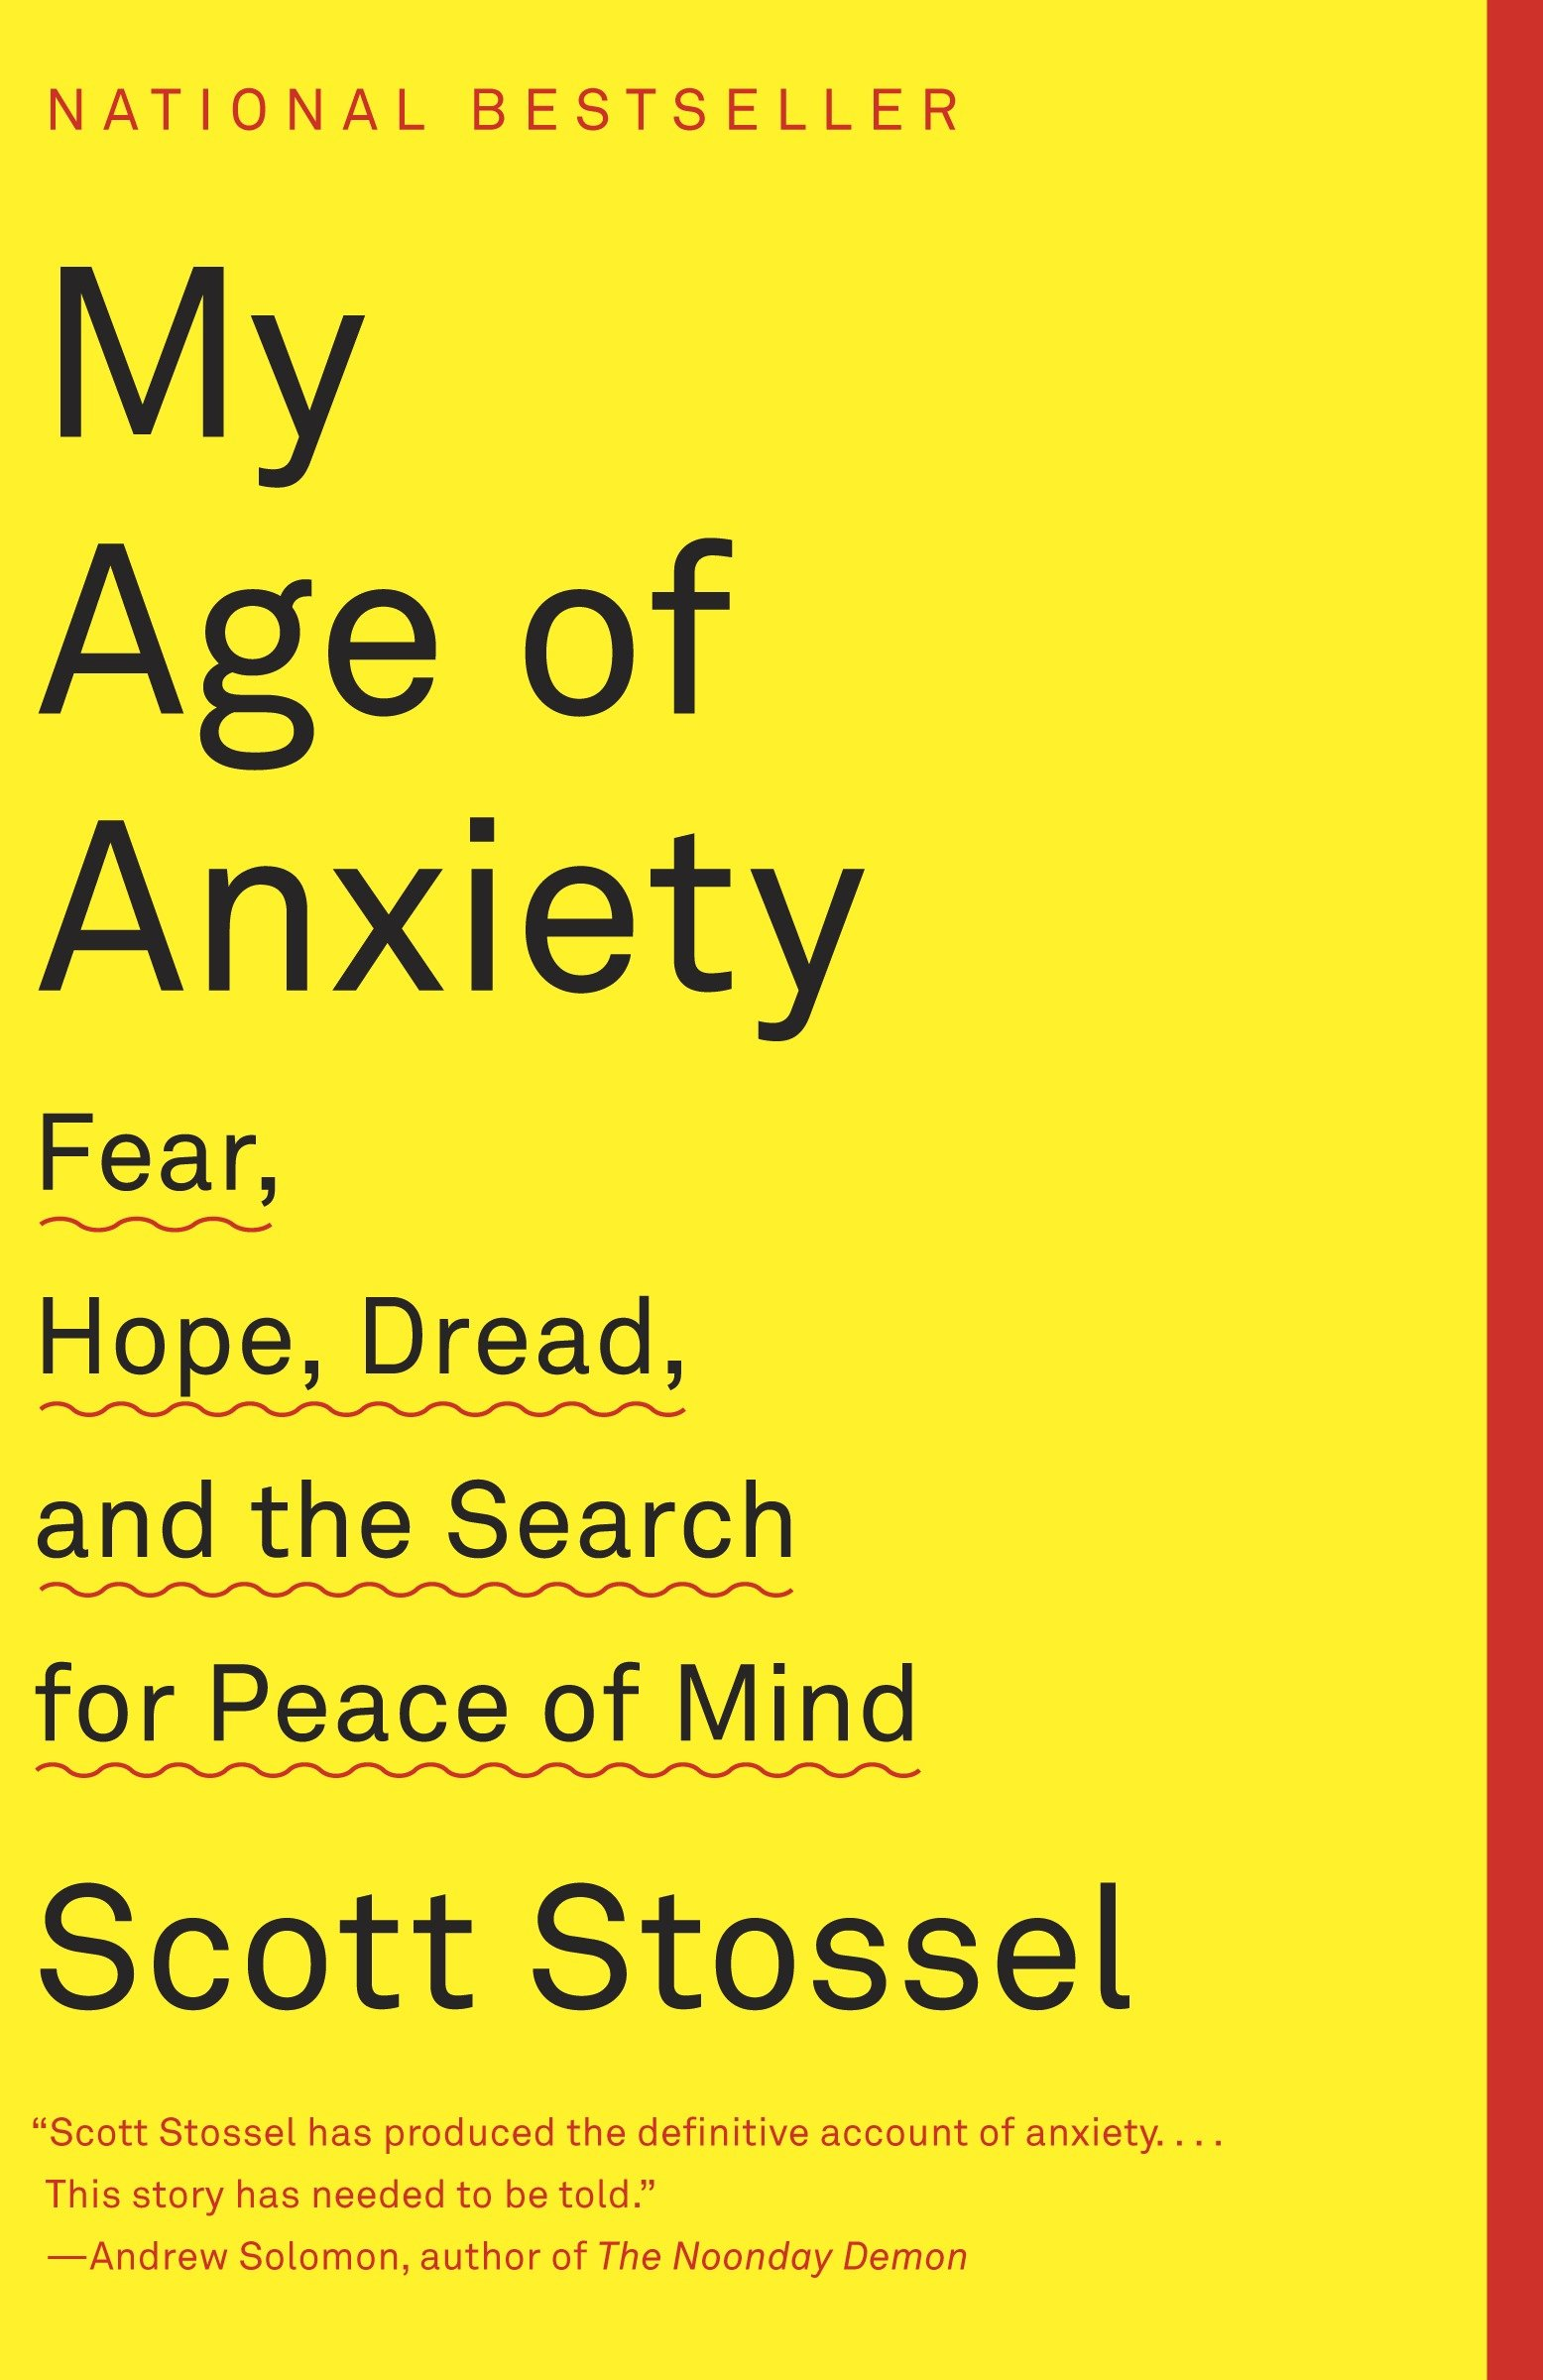 My Age of Anxiety Fear, Hope, Dread, and the Search for Peace of Mind